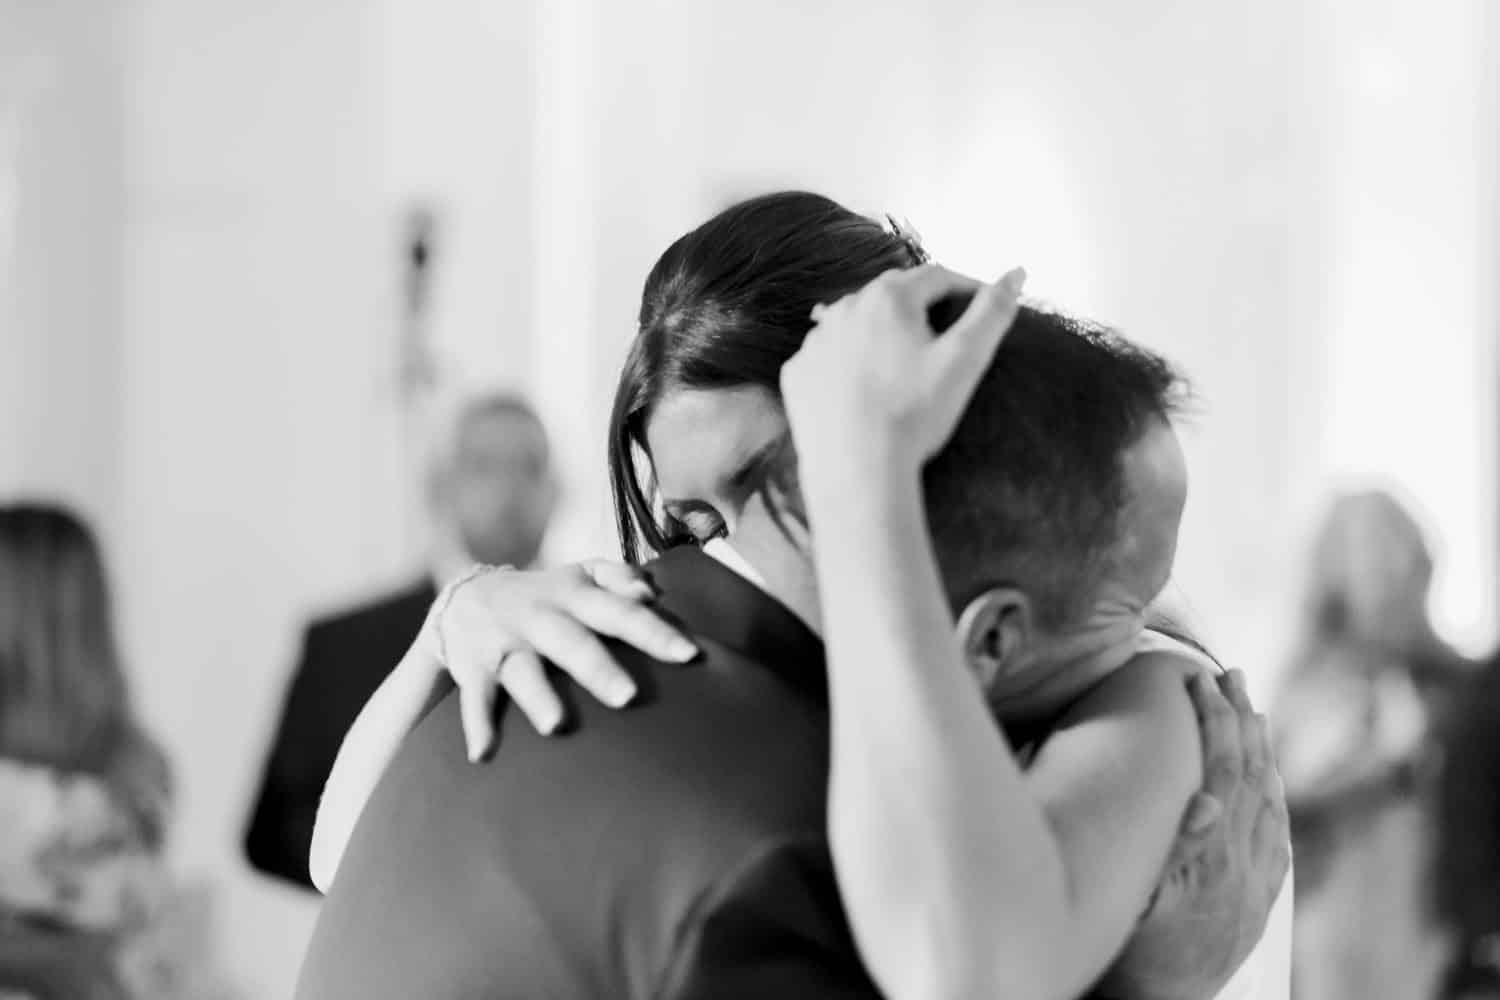 A tender moment on the dance floor